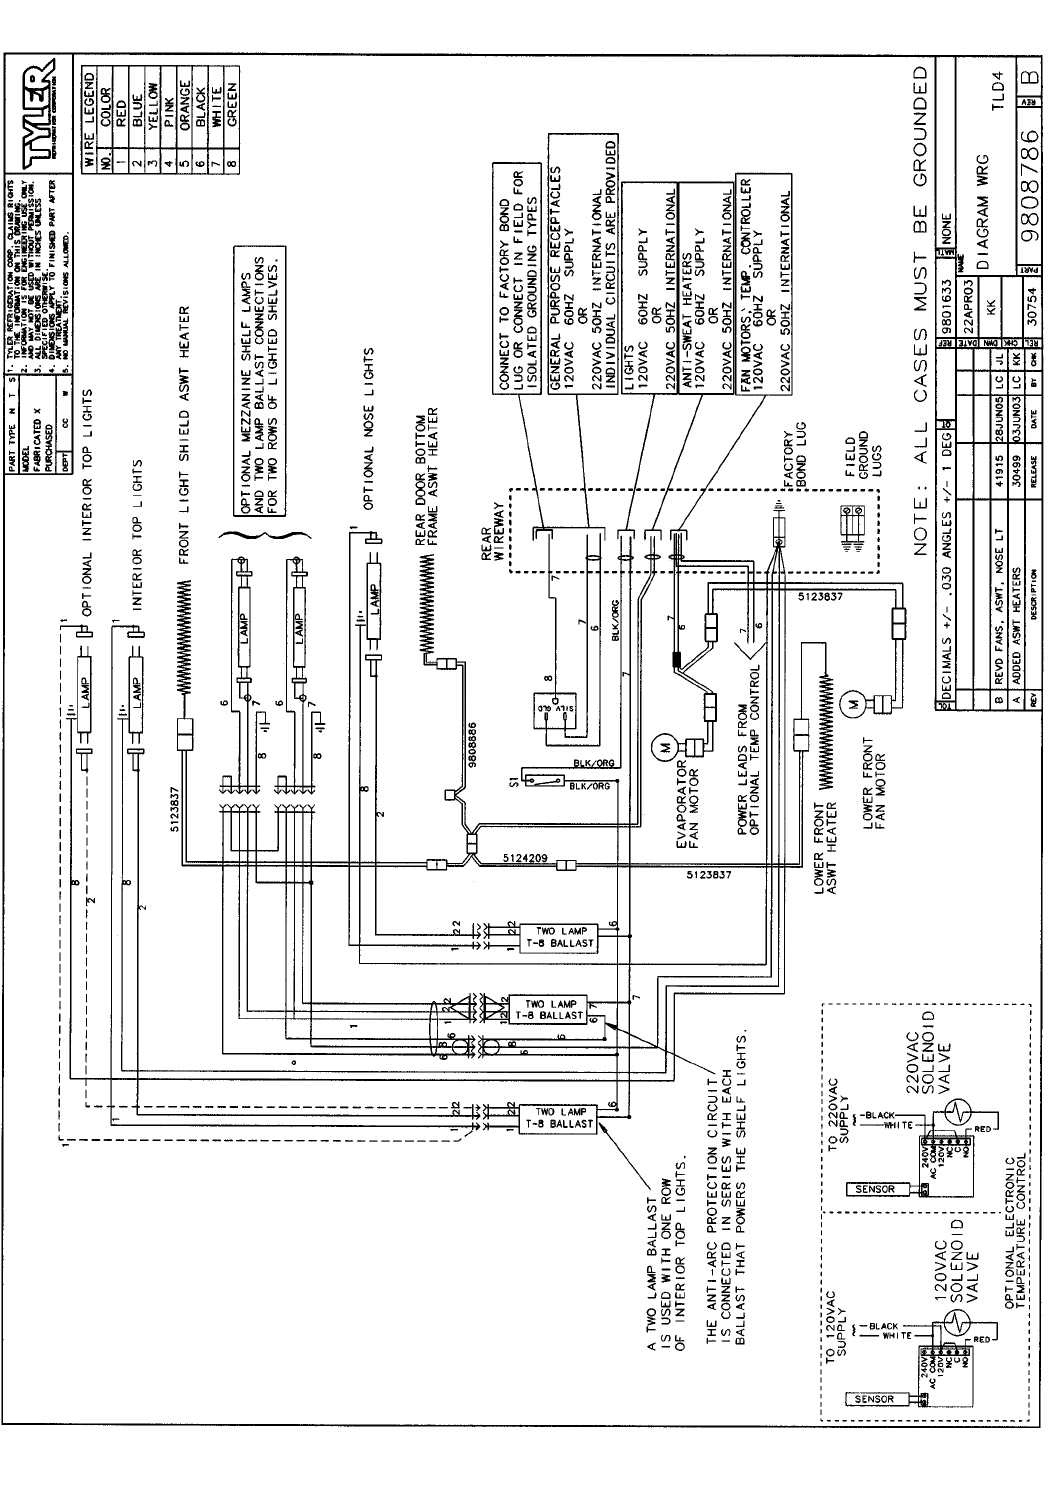 Tyler Refrigeration Wiring Diagrams Detailed Solenoid Diagram Tld Tlf Tlm Page 18 Schematic